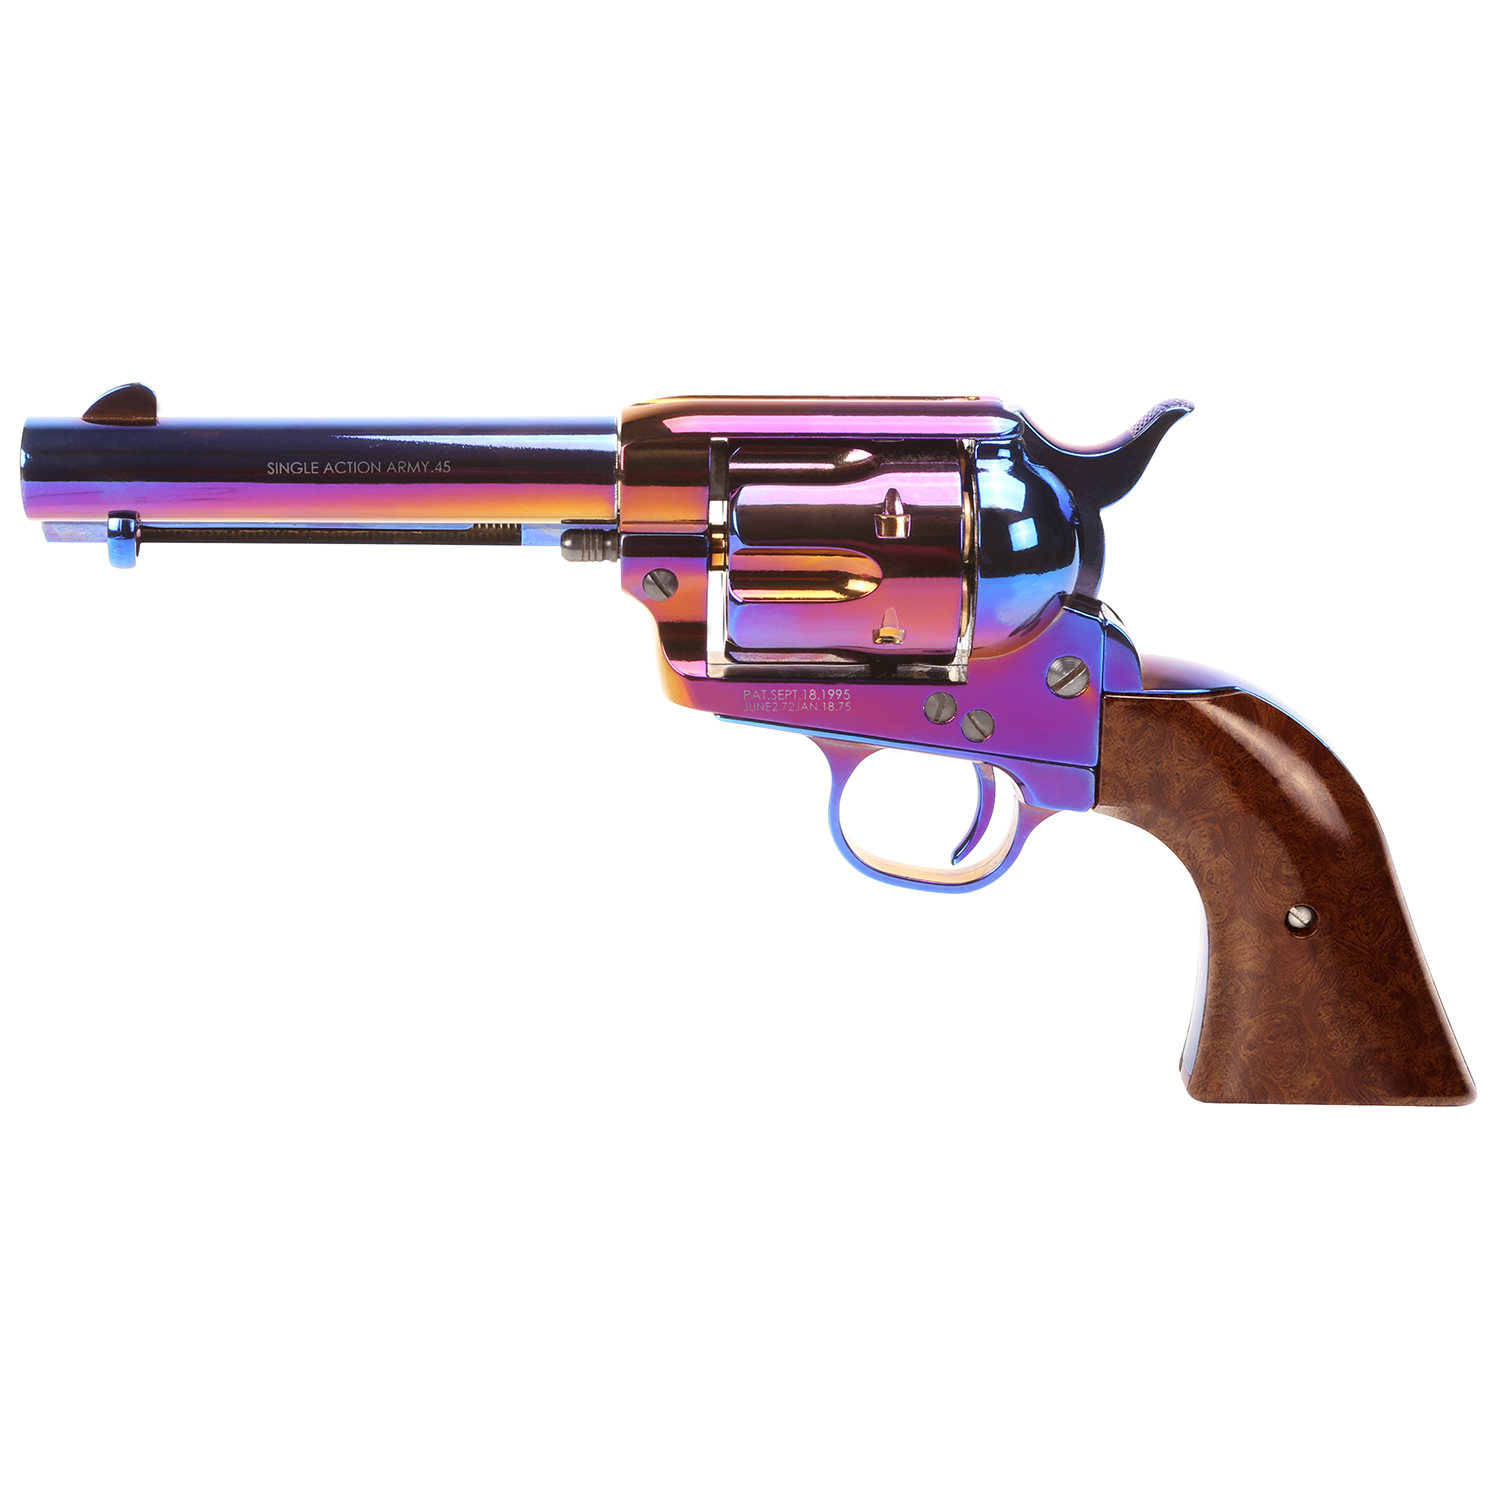 "King Arms SAA .45 Peacemaker Revolver S 4"" - Bluing Style"